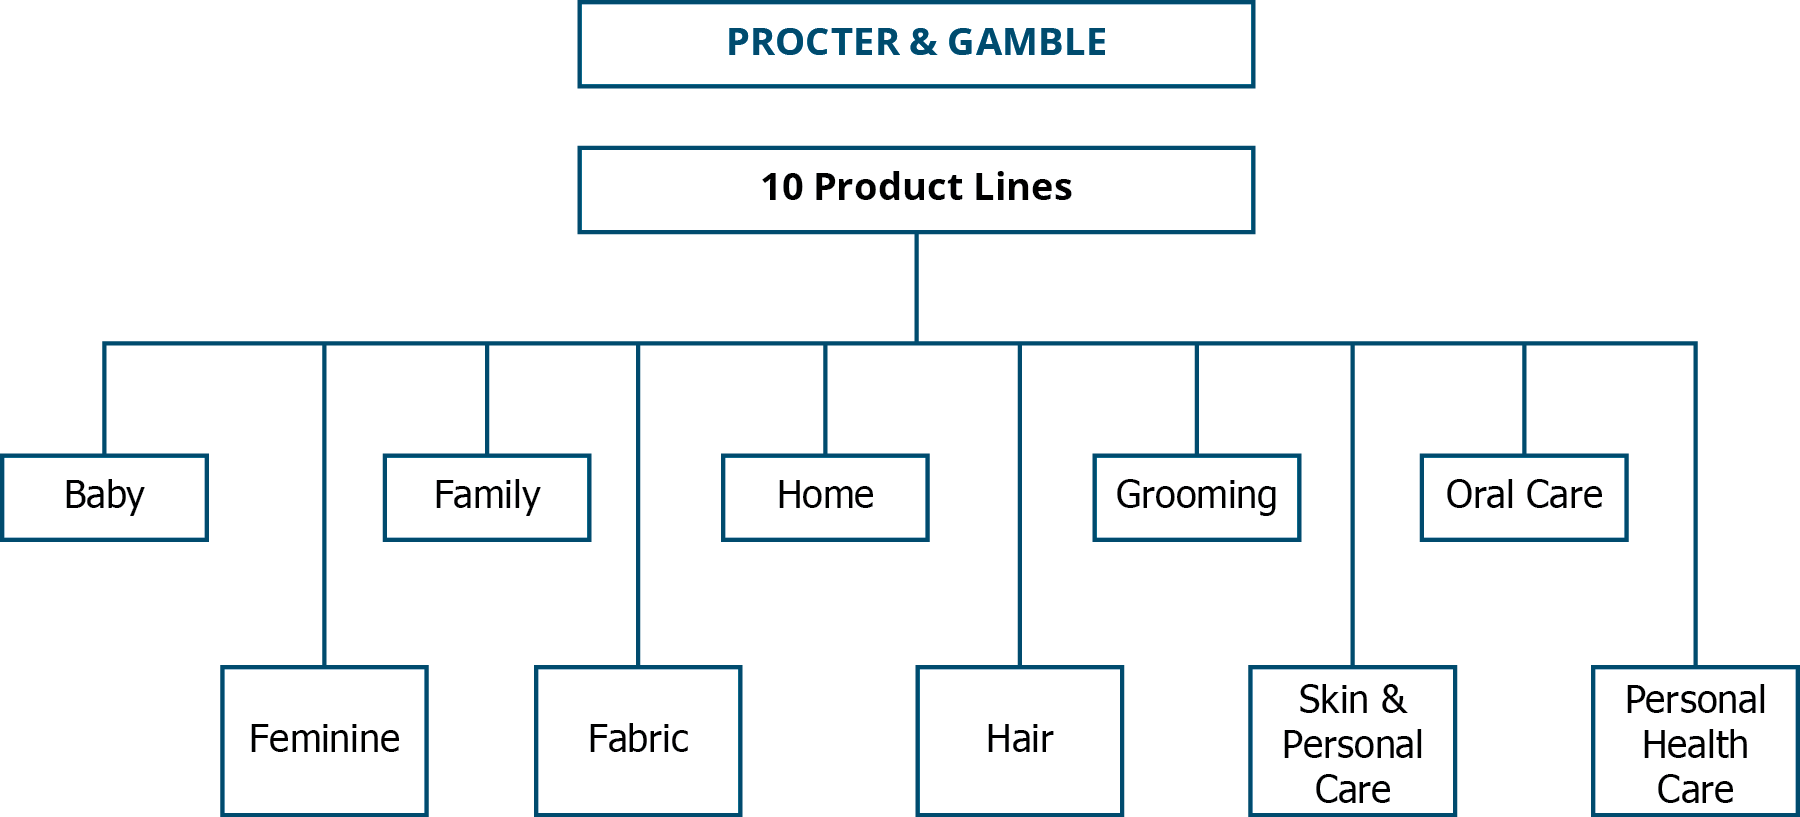 Organizational chart of Procter & Gamble showing the 10 product lines: Baby, Feminine, Family, Fabric, Home, Hair, Grooming, Skin and Personal Care, Oral Care, and Personal Health Care.